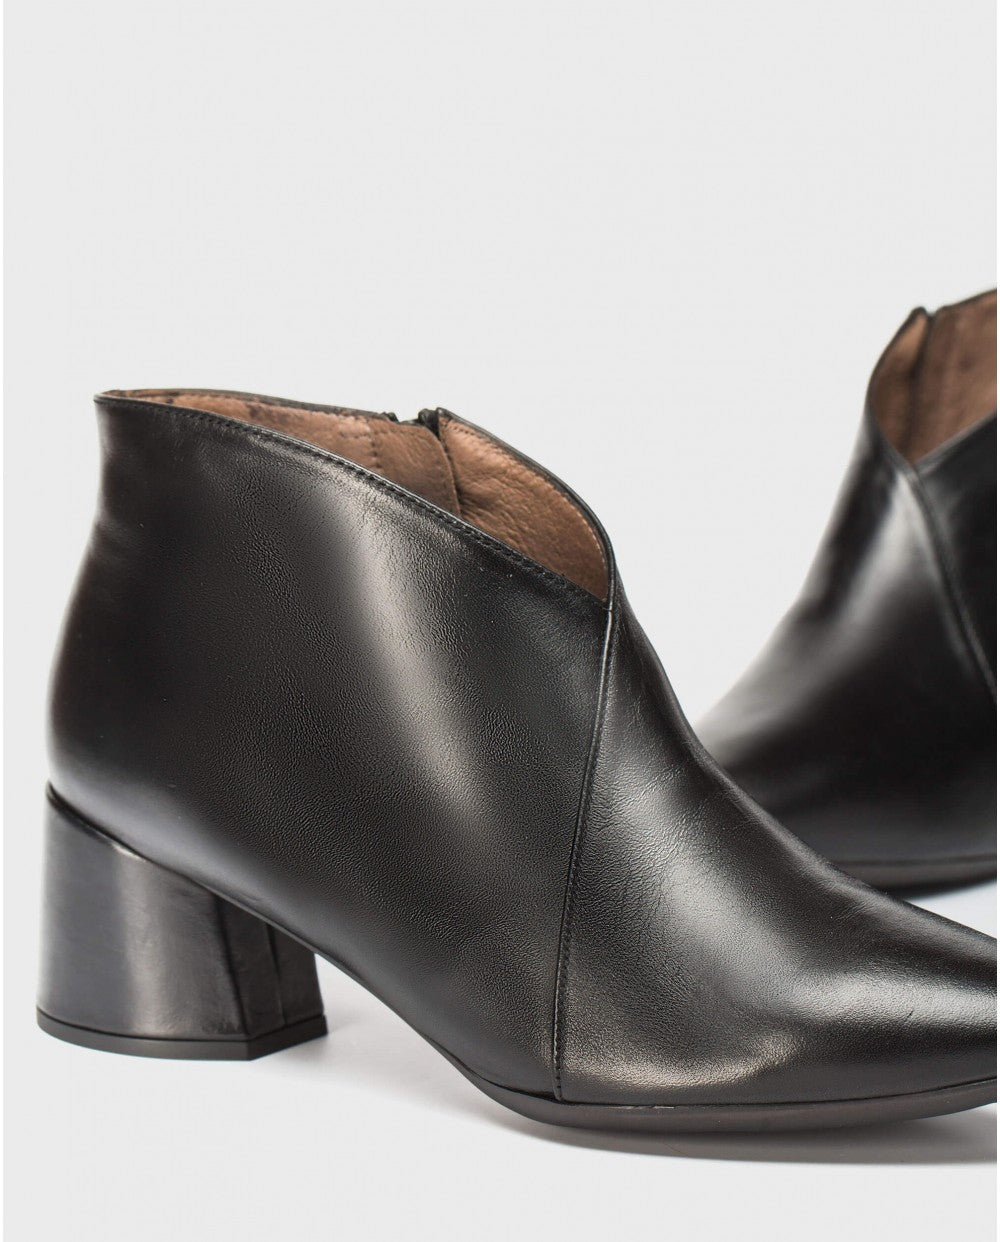 Wonders 'V' Ankle Boots Black